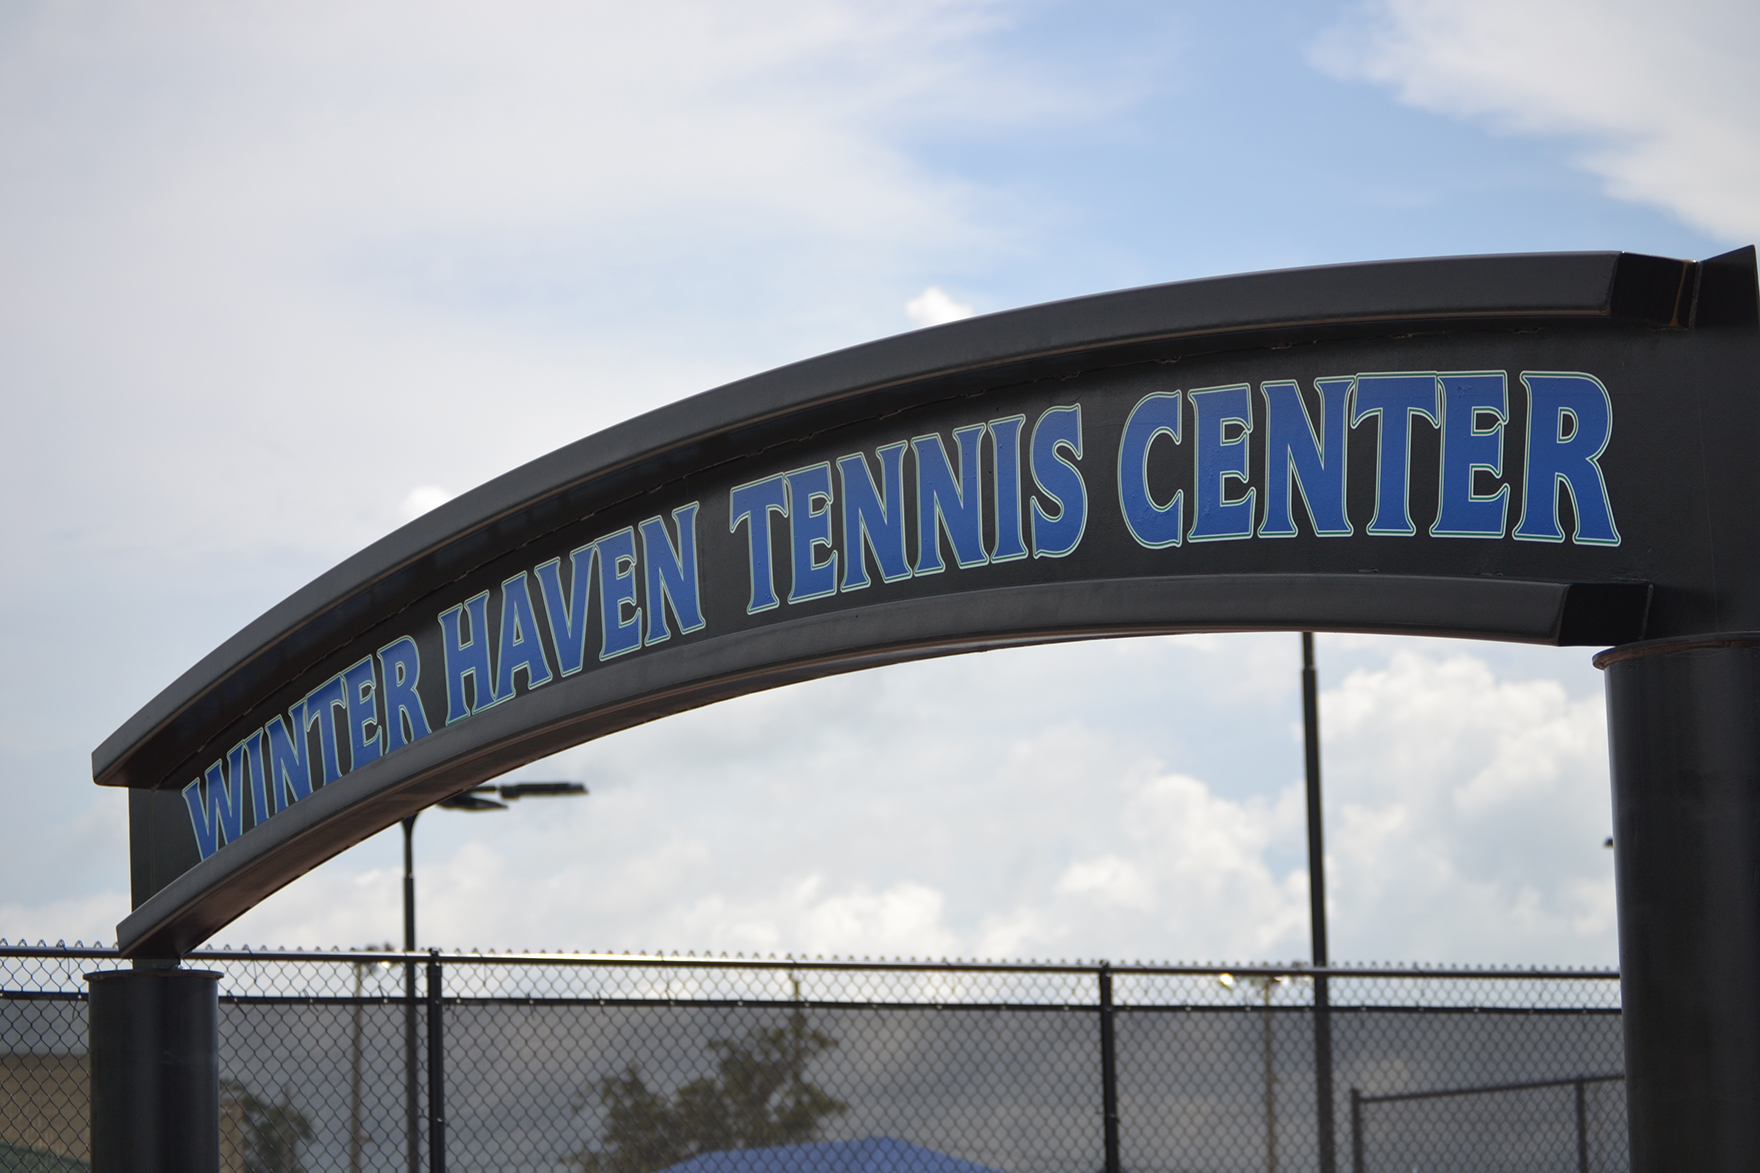 The new entrance to the Winter Haven Tennis Center